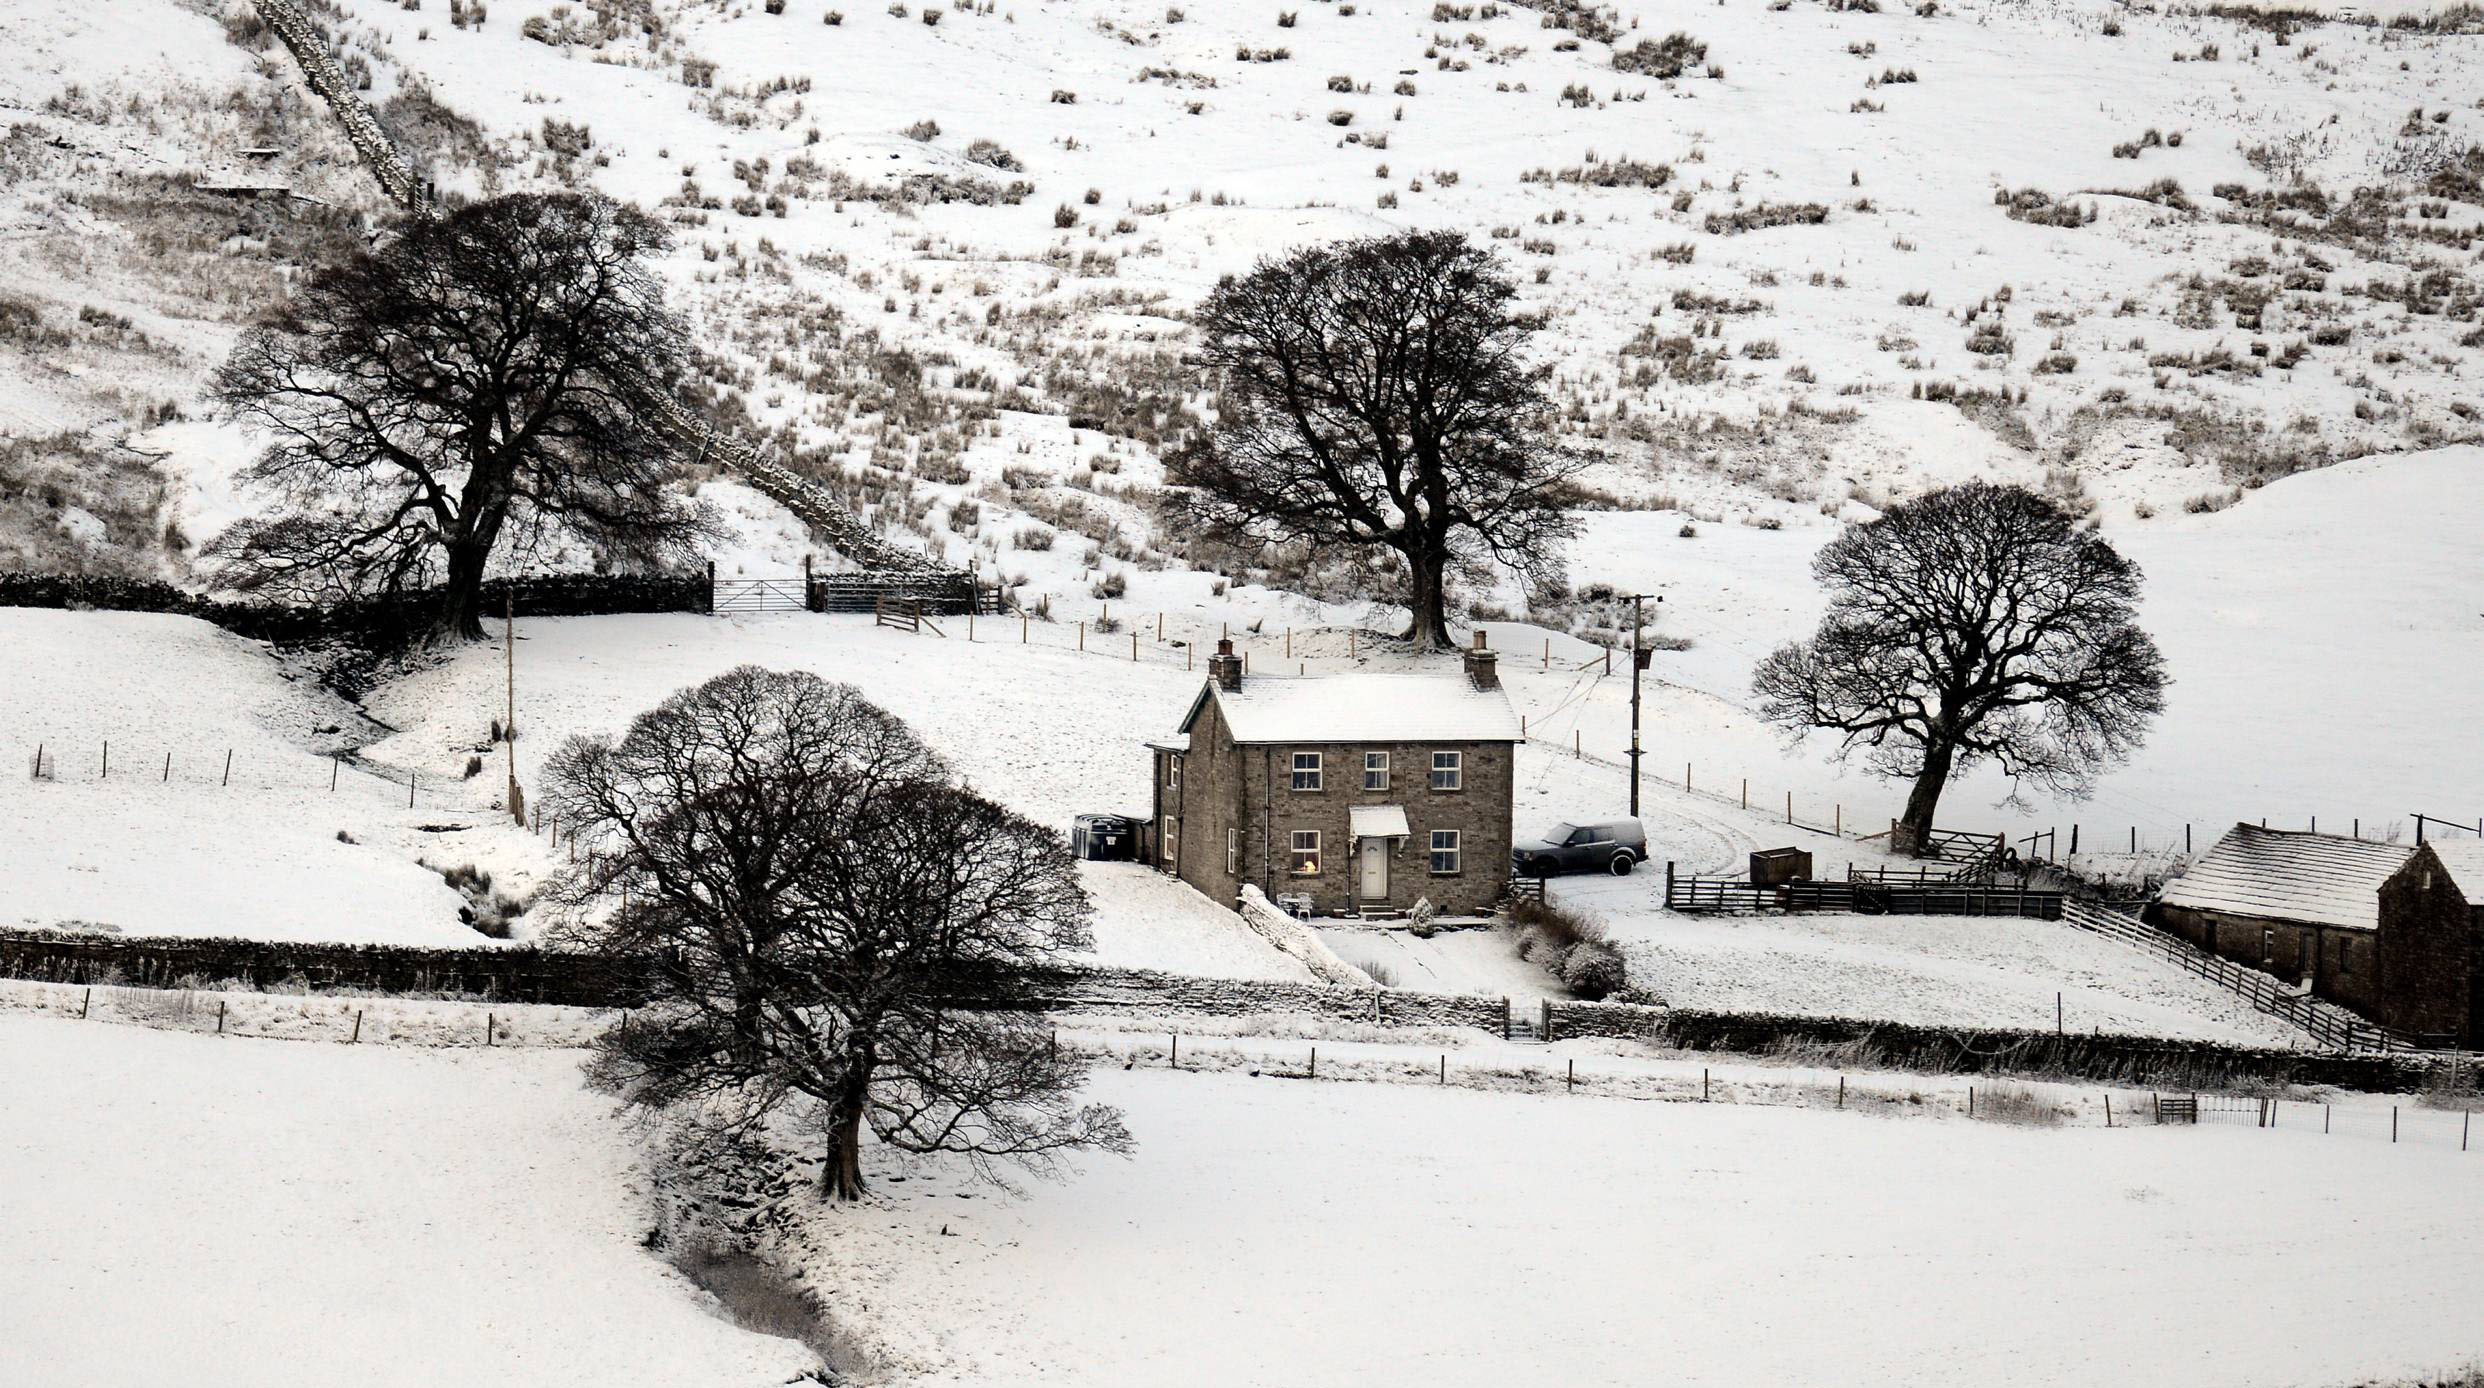 A farmhouse this morning (MON) as a beautiful winters day starts across the North Pennines in Cumbria following heavy snow showers overnight.